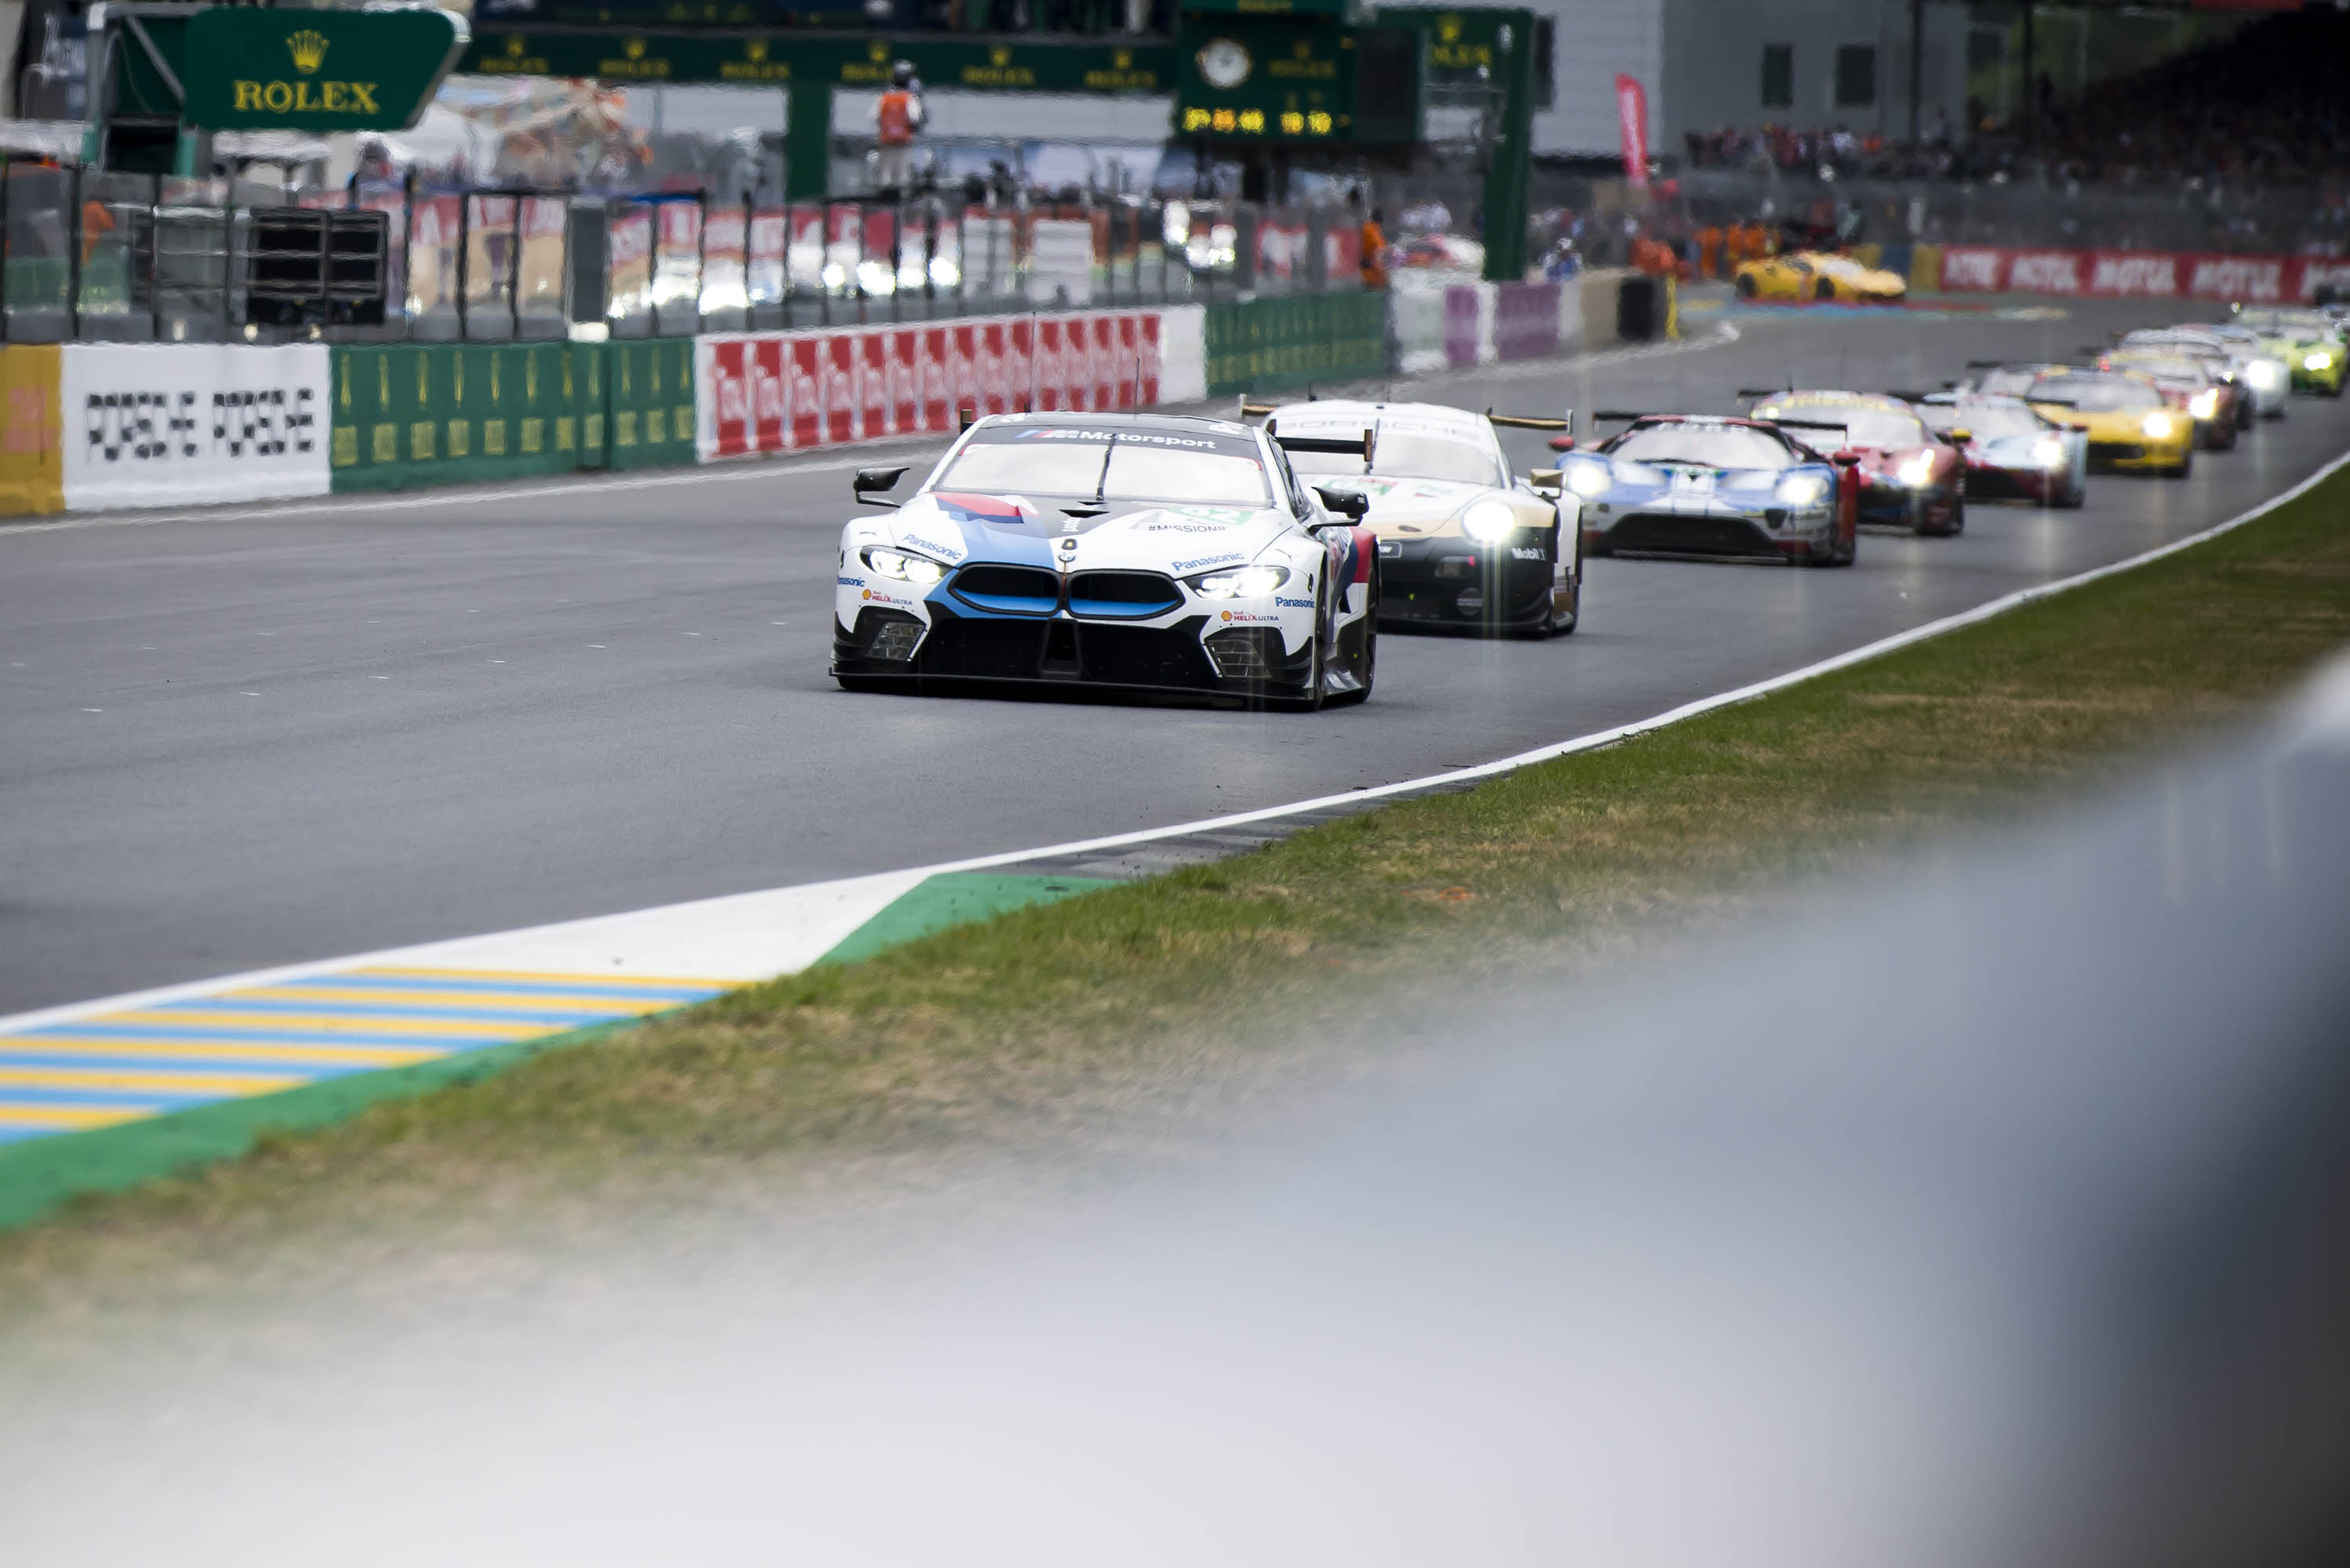 MRS_BMW_LeMans2019_02021